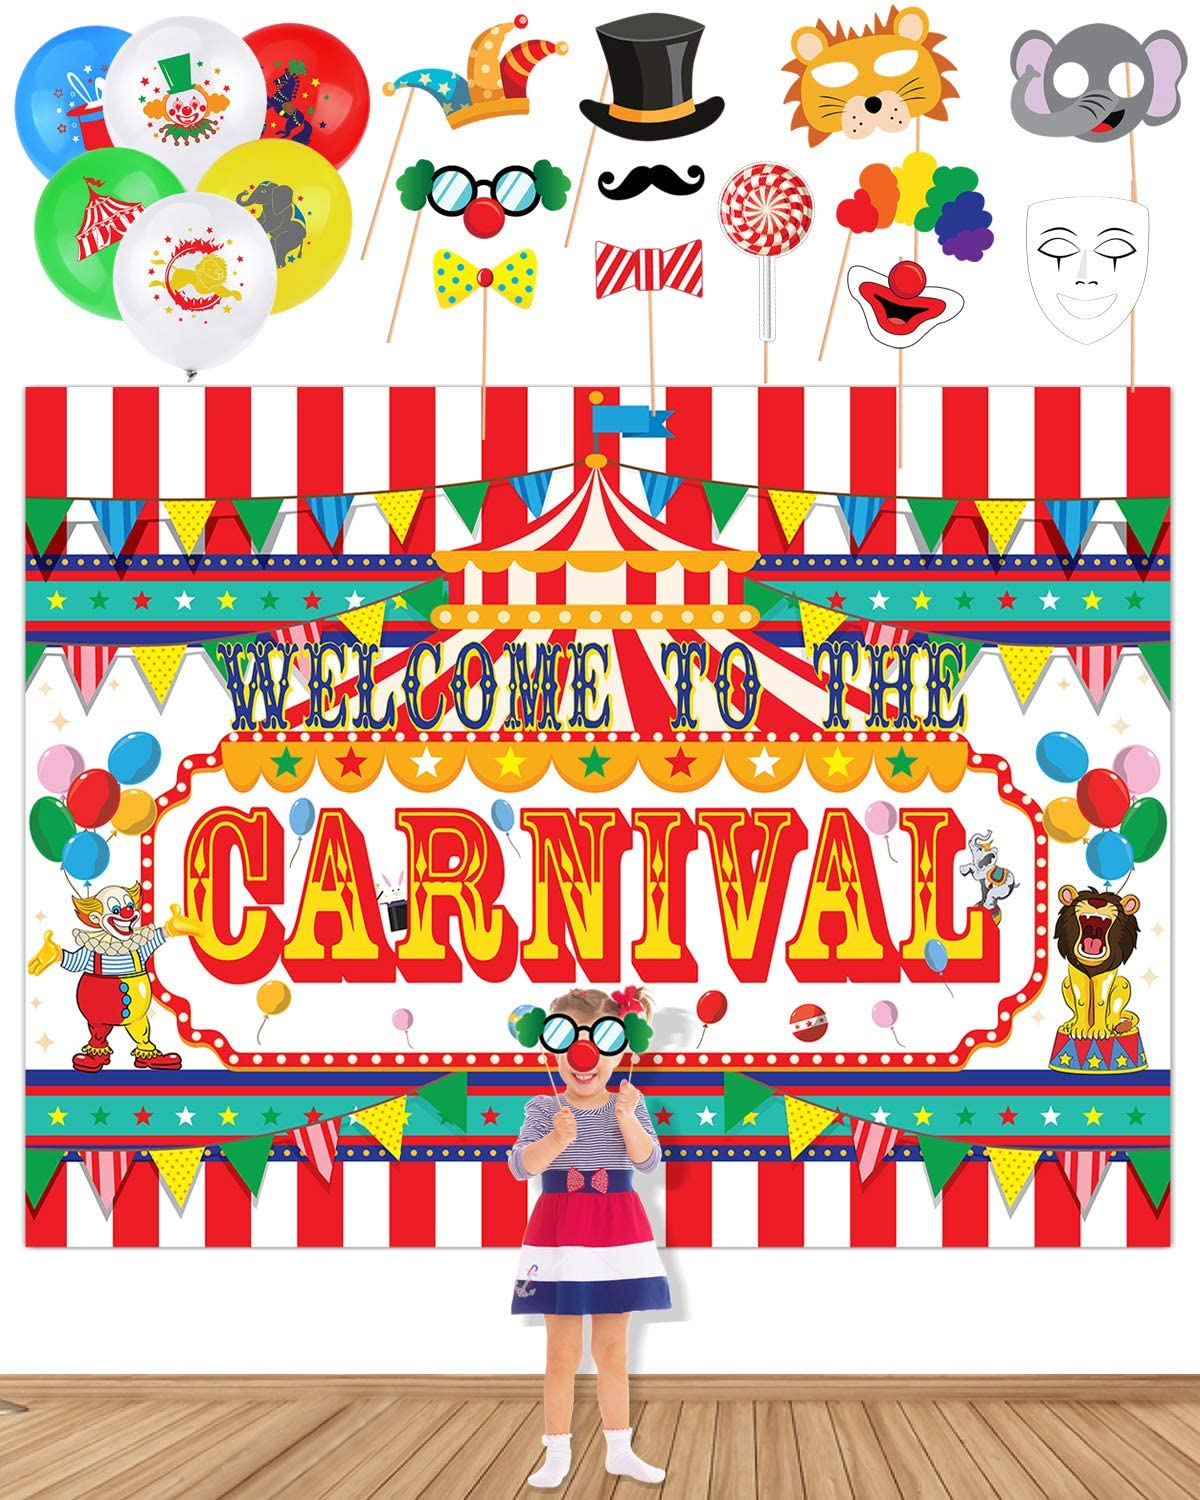 Circus Carnival Banner Backdrop,20 Carnival Balloons 11 Carnival Photo Booth Props For Circus Carnival Party Supplies Decorations